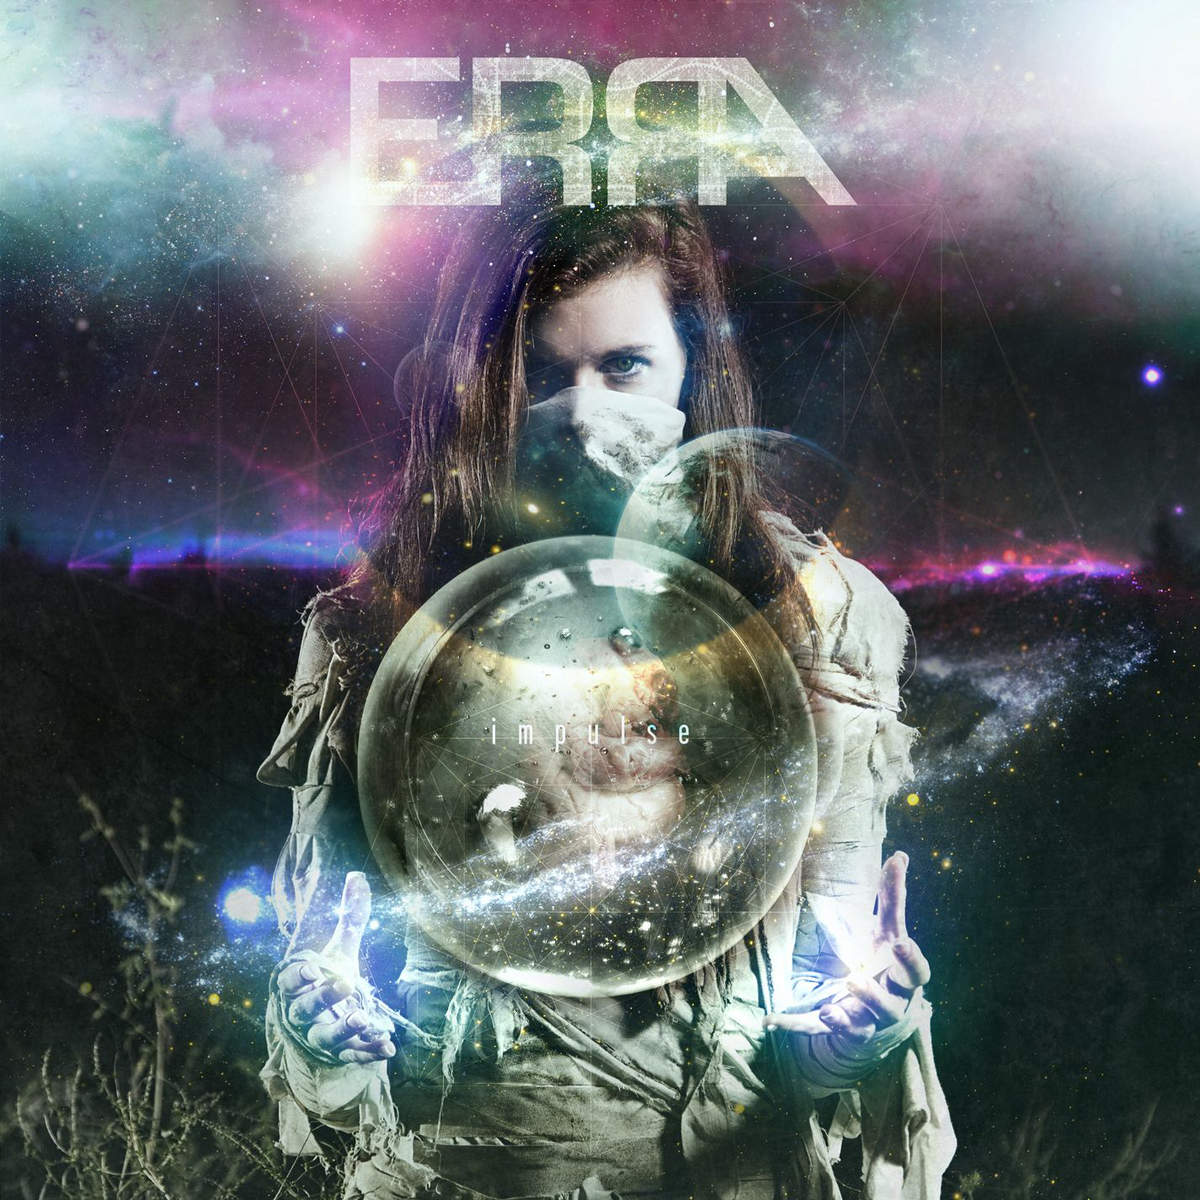 Erra - Impulse (2011)